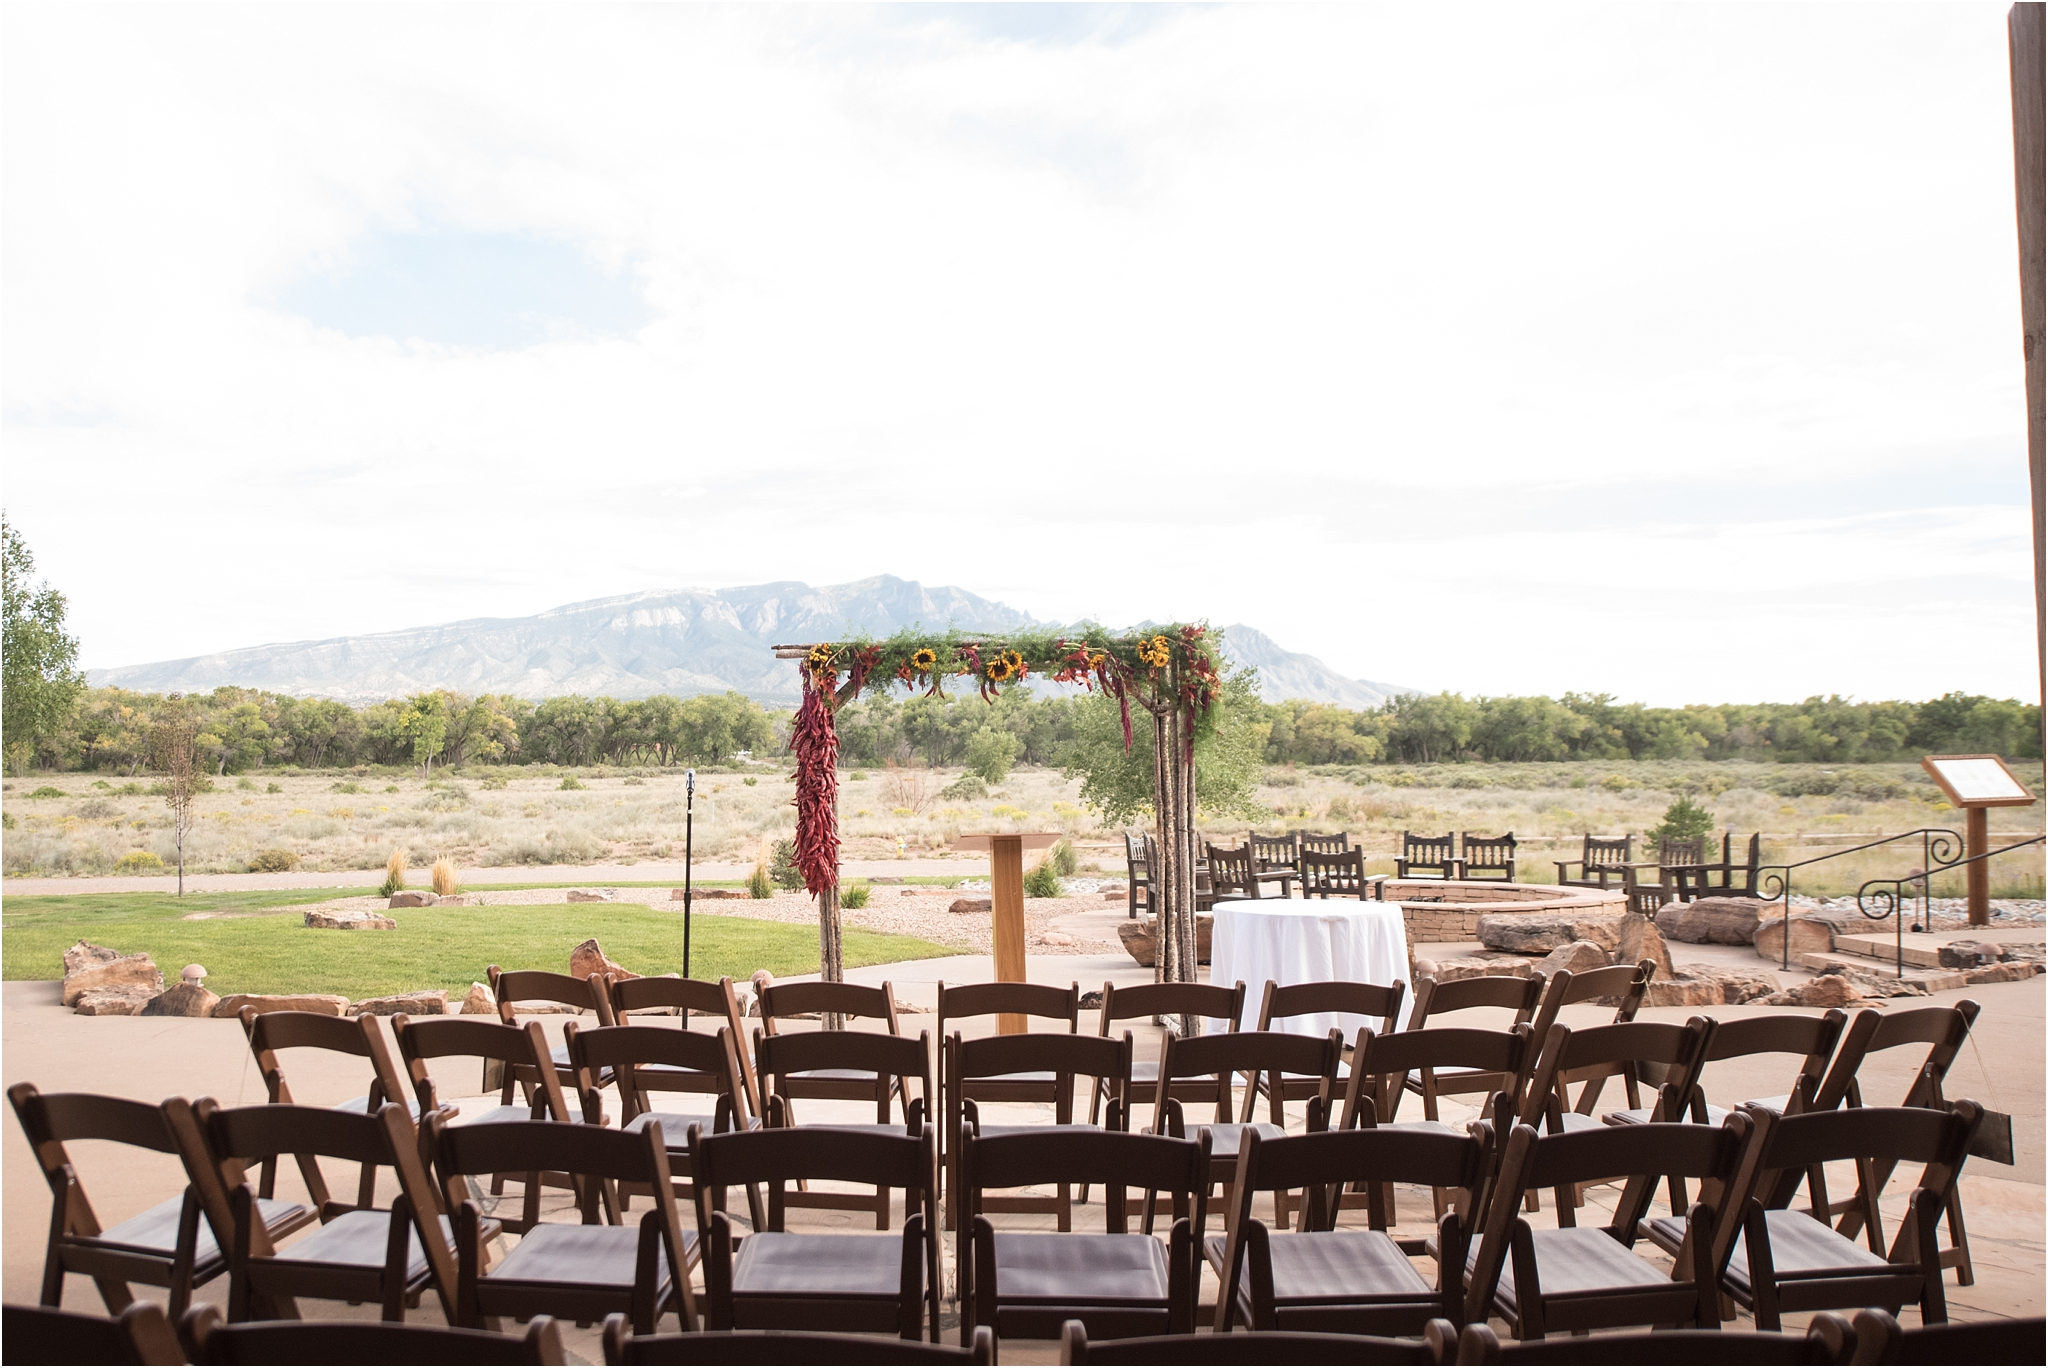 kayla kitts photography - albuquerque wedding photographer - new mexico wedding photographer - desination wedding photographer - cabo wedding photographer_0037.jpg